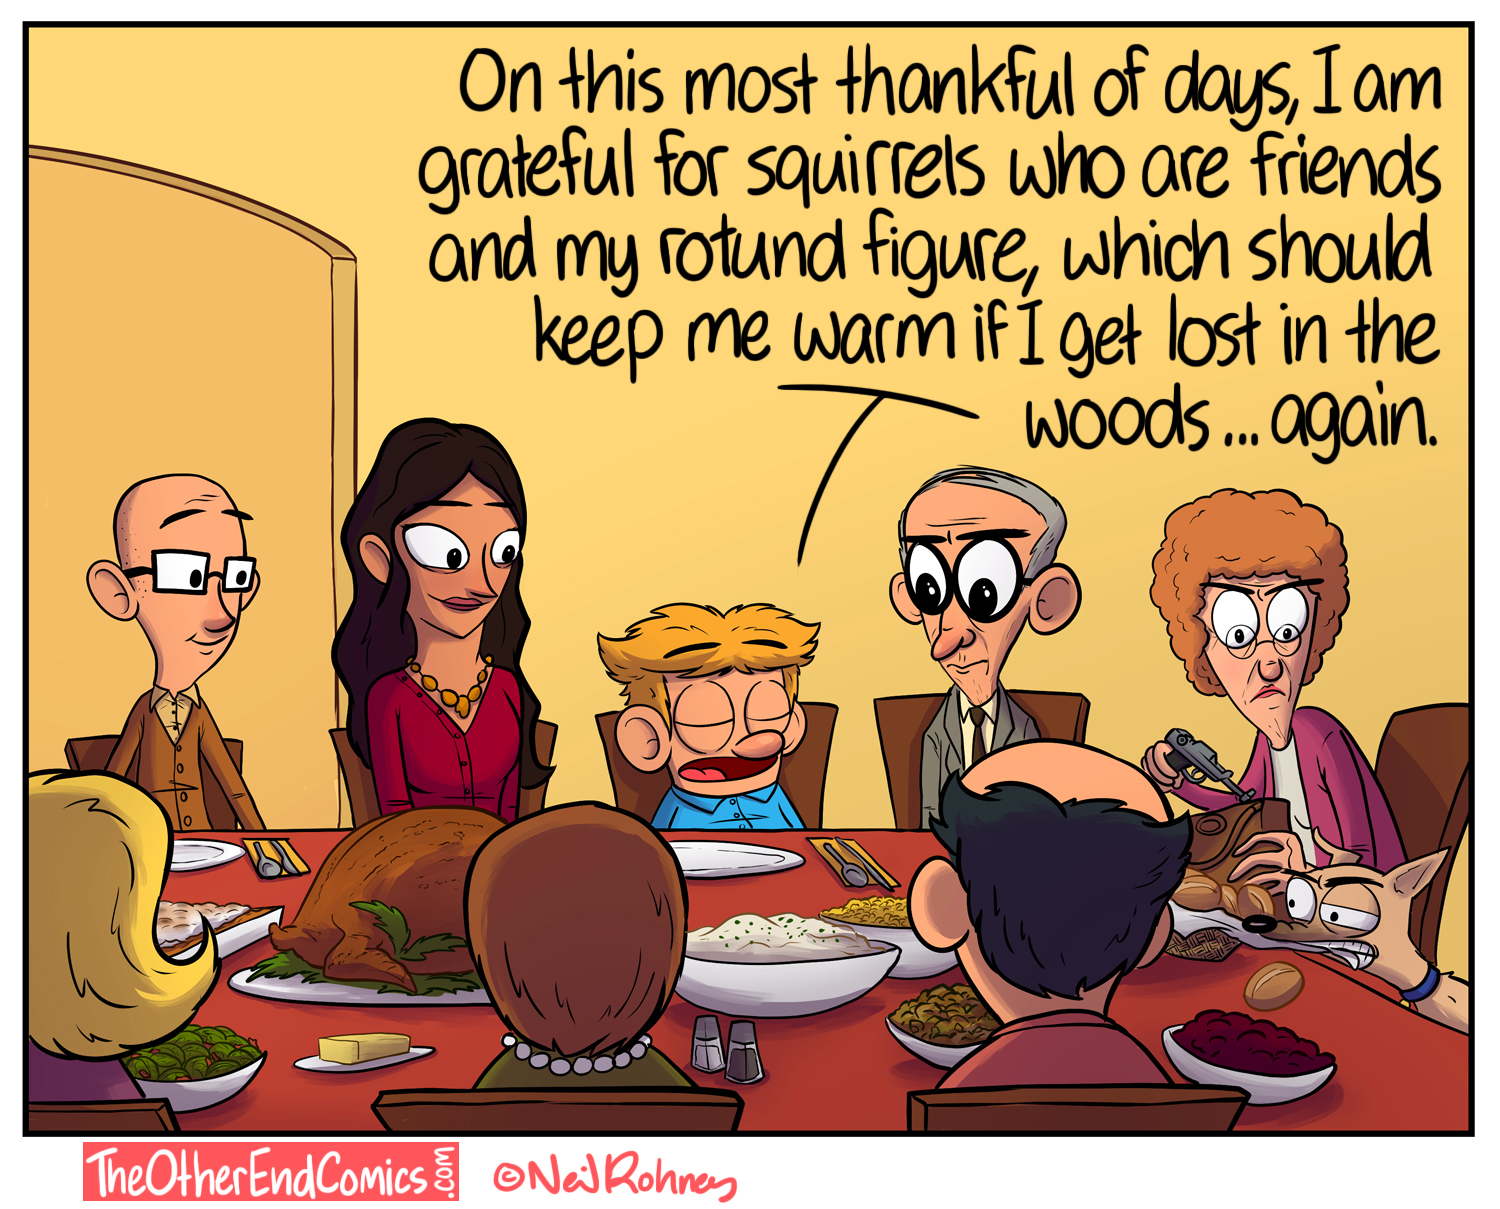 11-24-thanksgiving